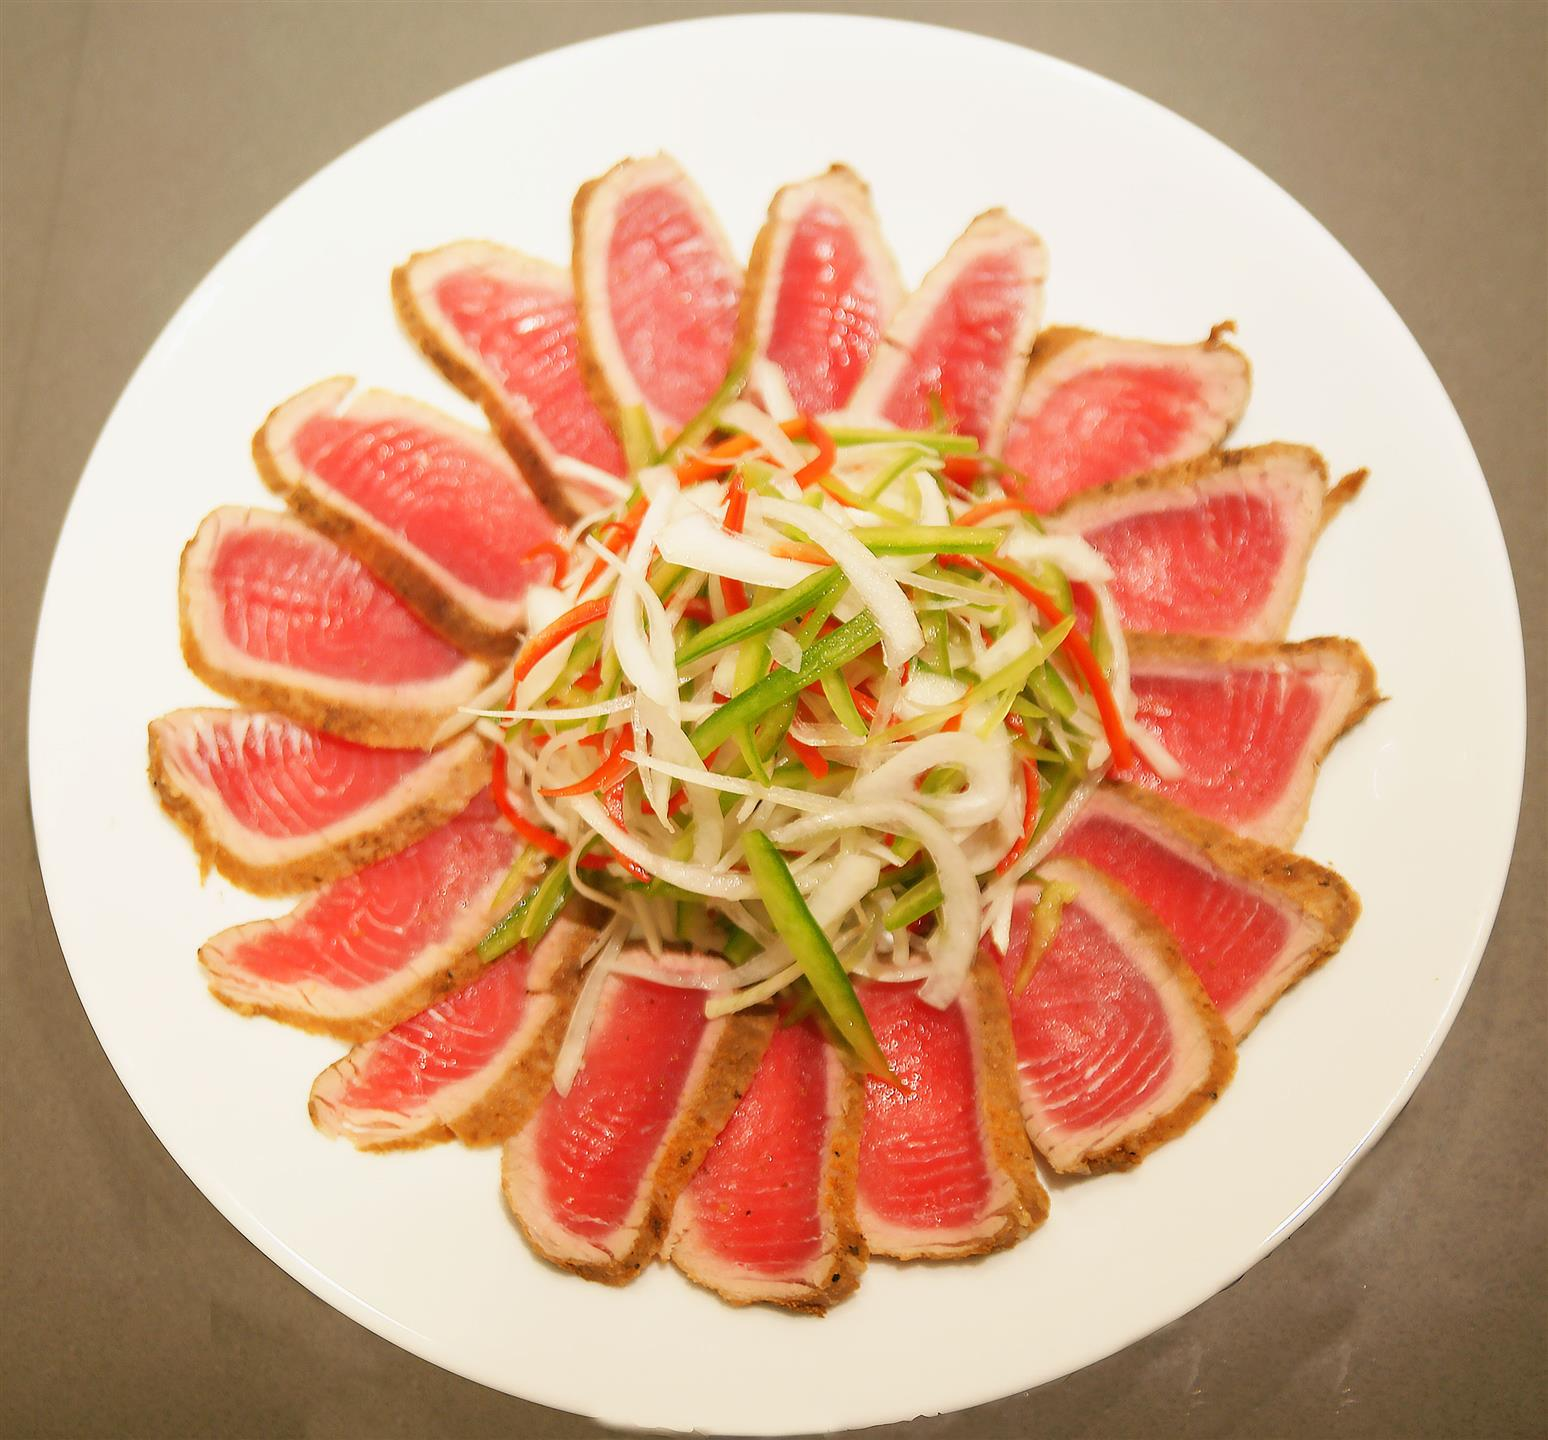 raw beef on a circular platter